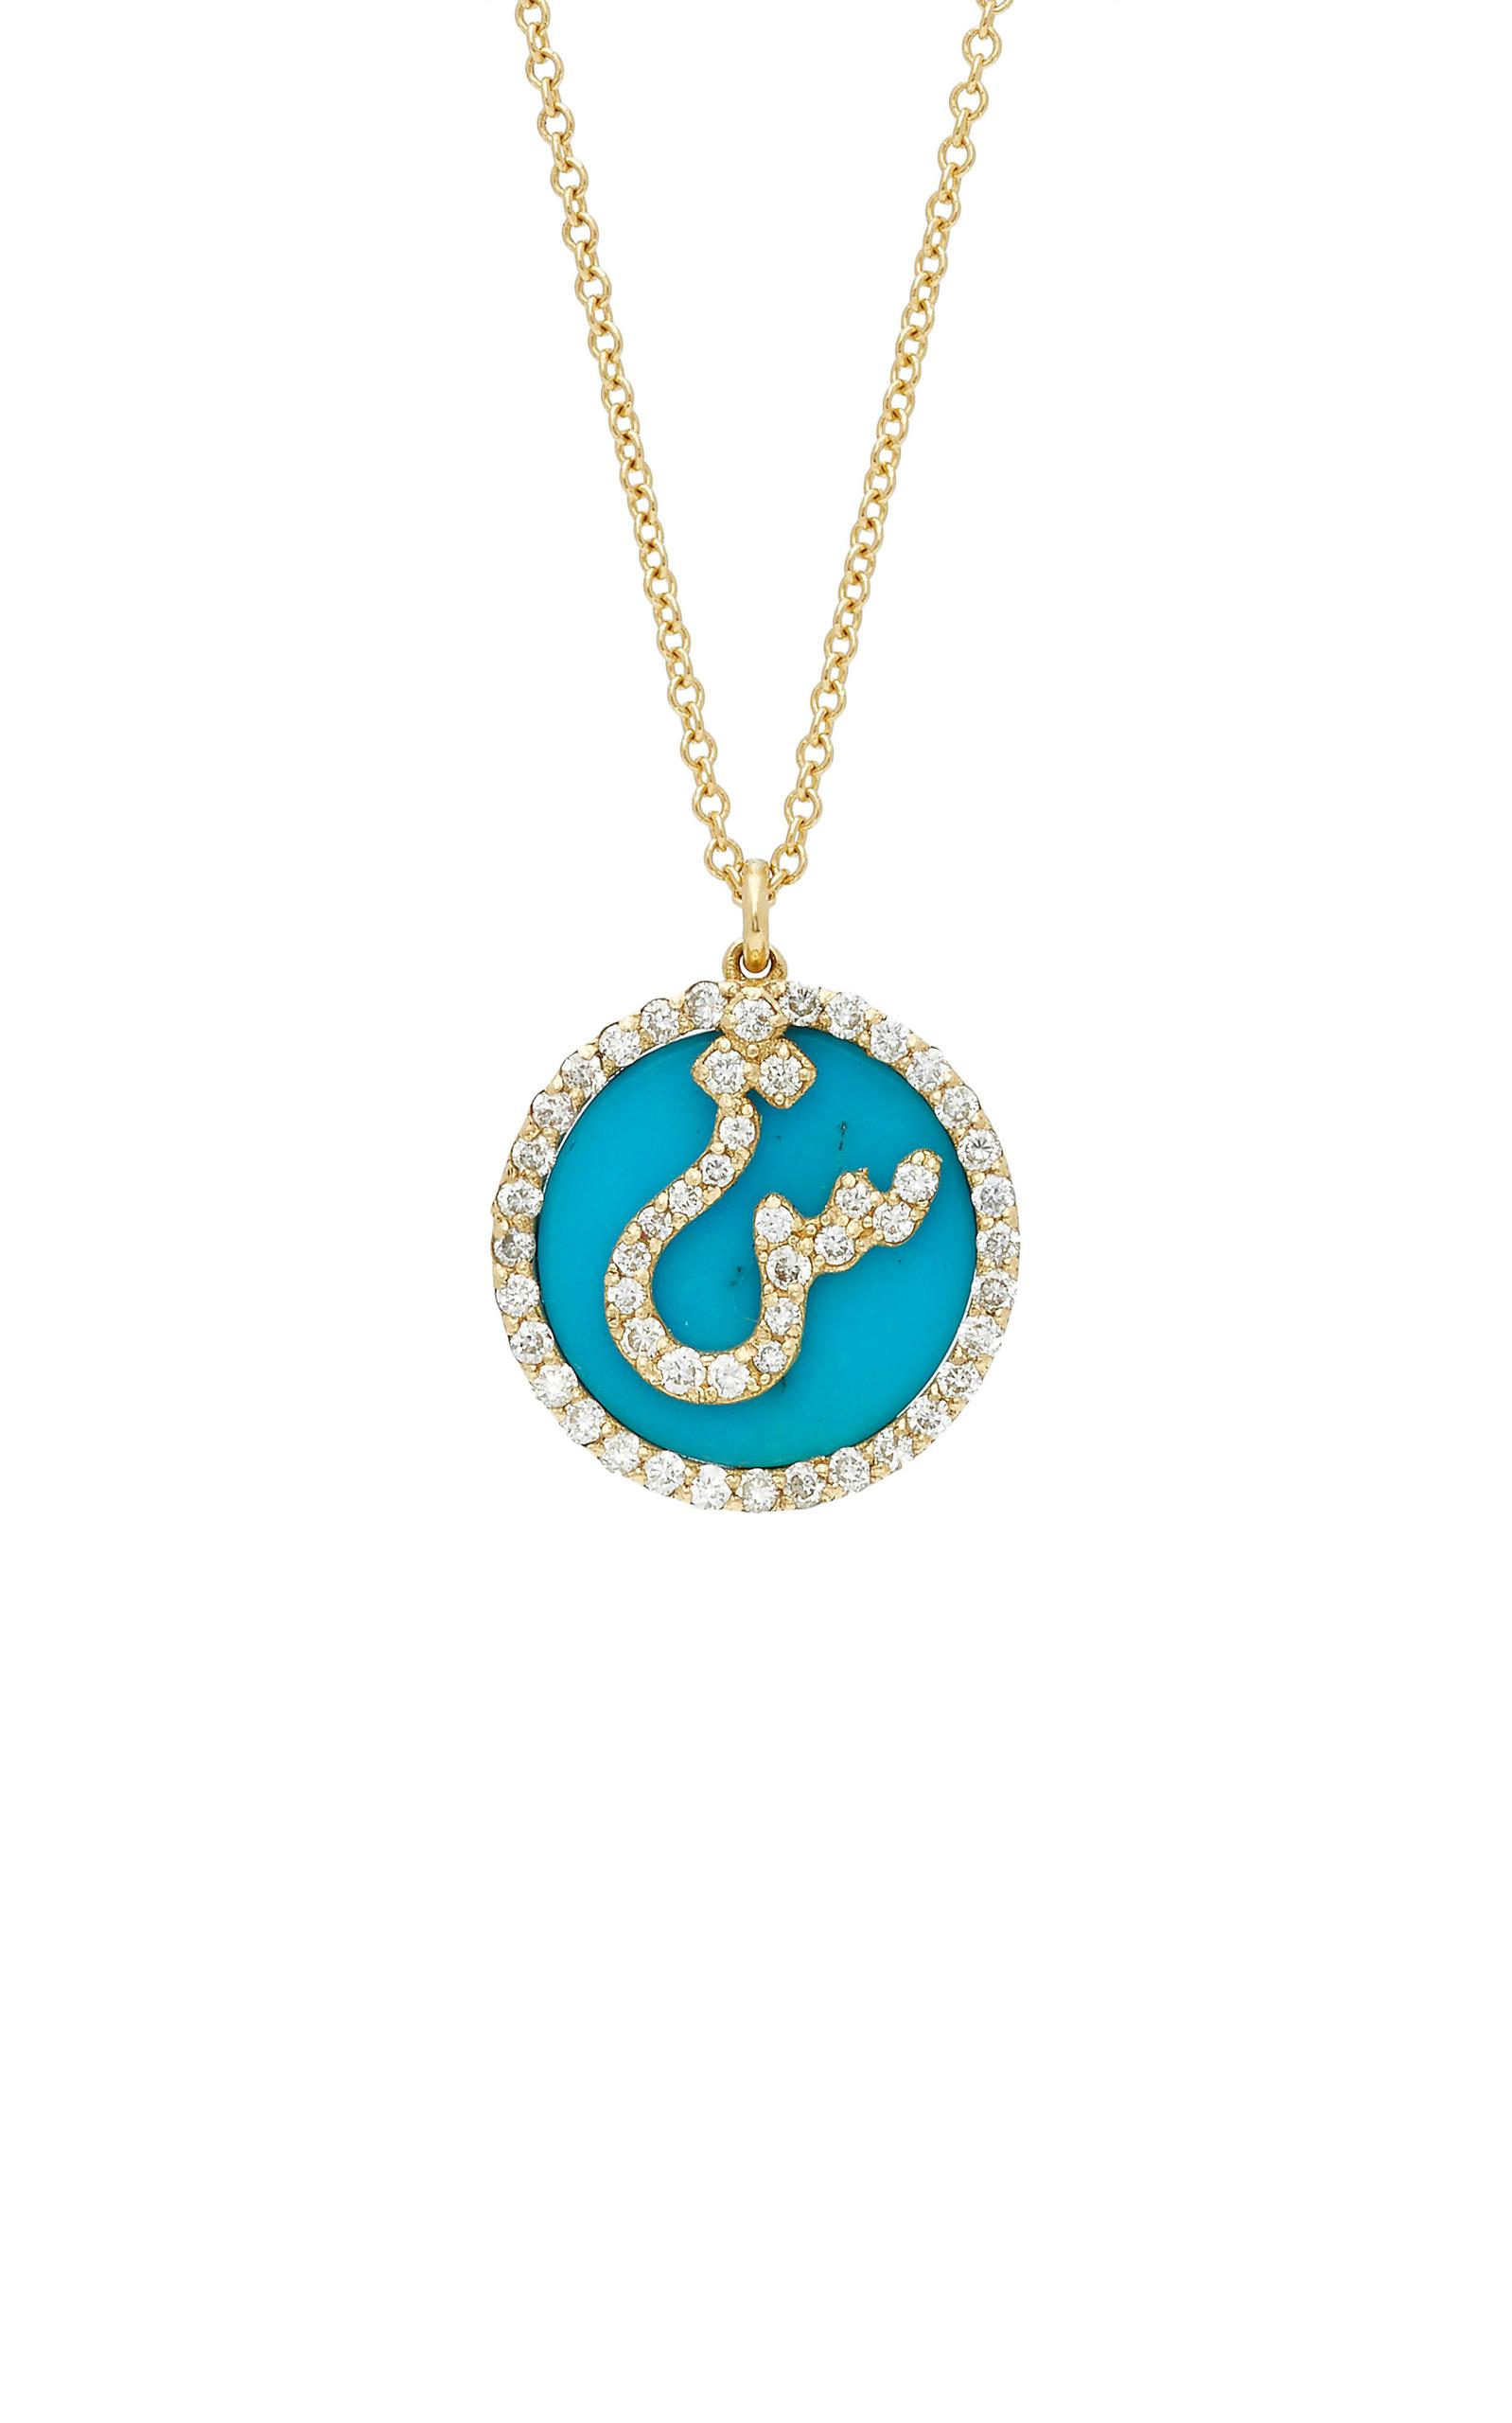 muslim gifts women jewelry for s swarovski at islamic exclusive a allah take products in pendant chain gold nano necklace look closer imprint arabic